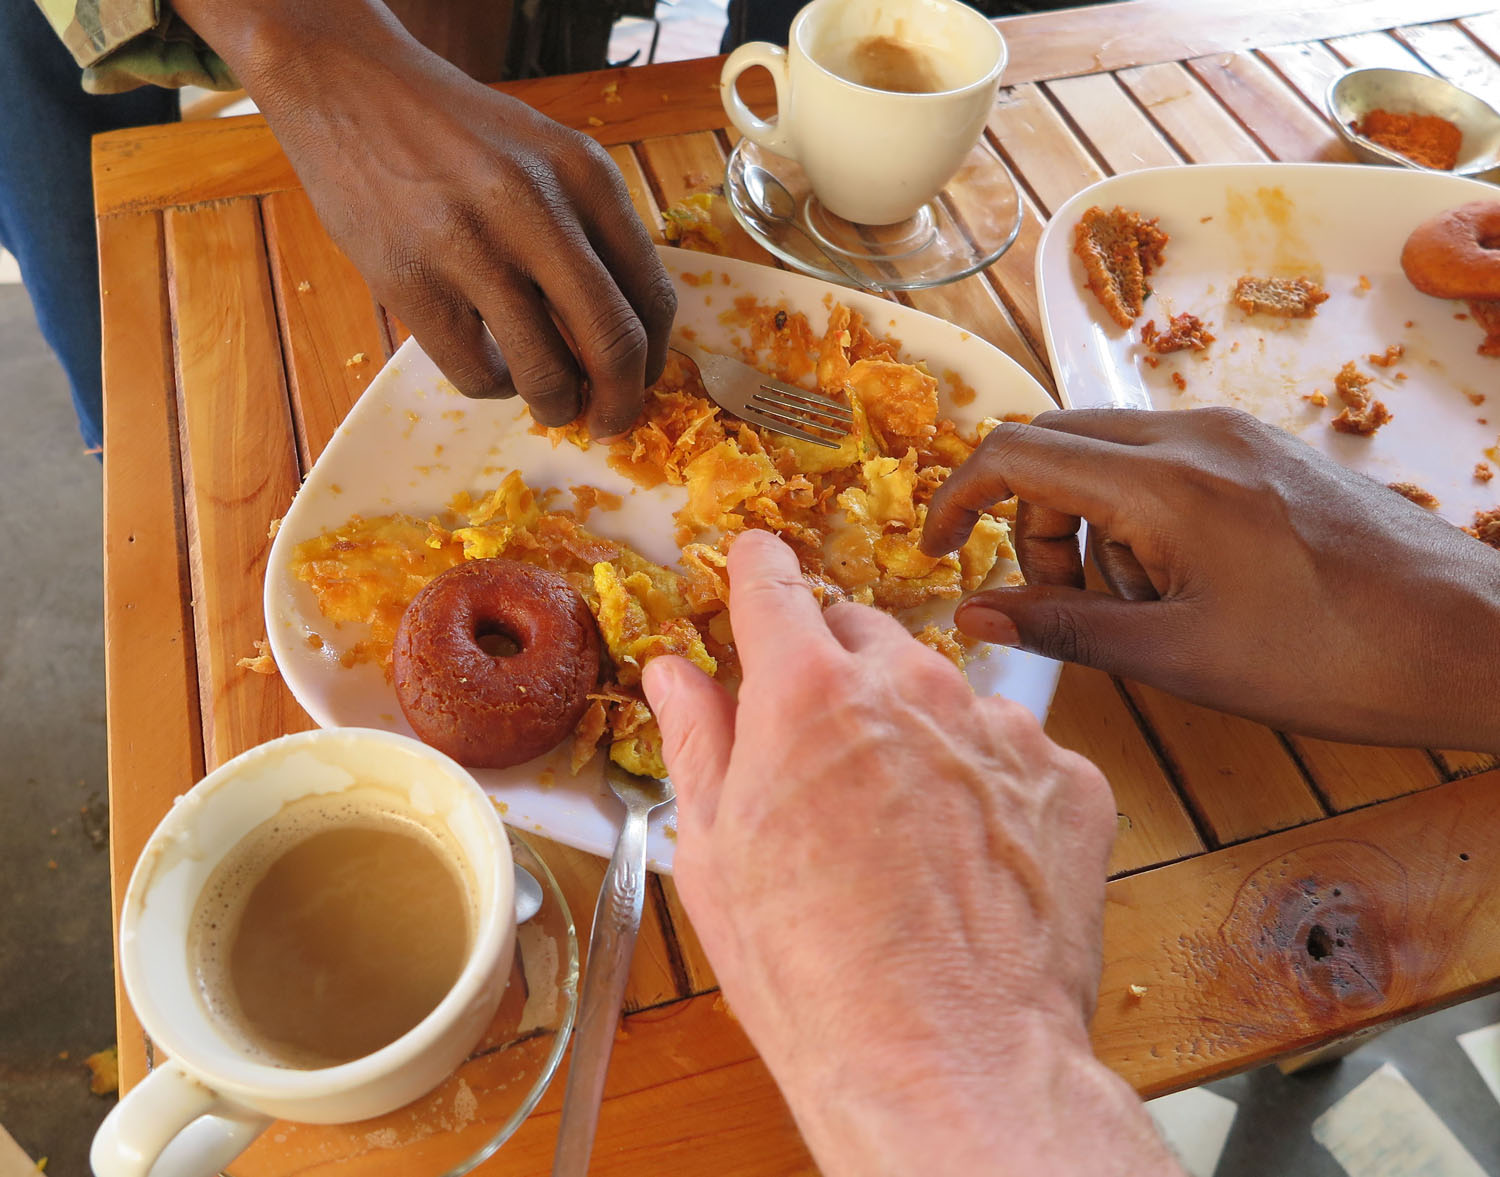 Ethiopia-Harar-Food-And-Drink-Breakfast